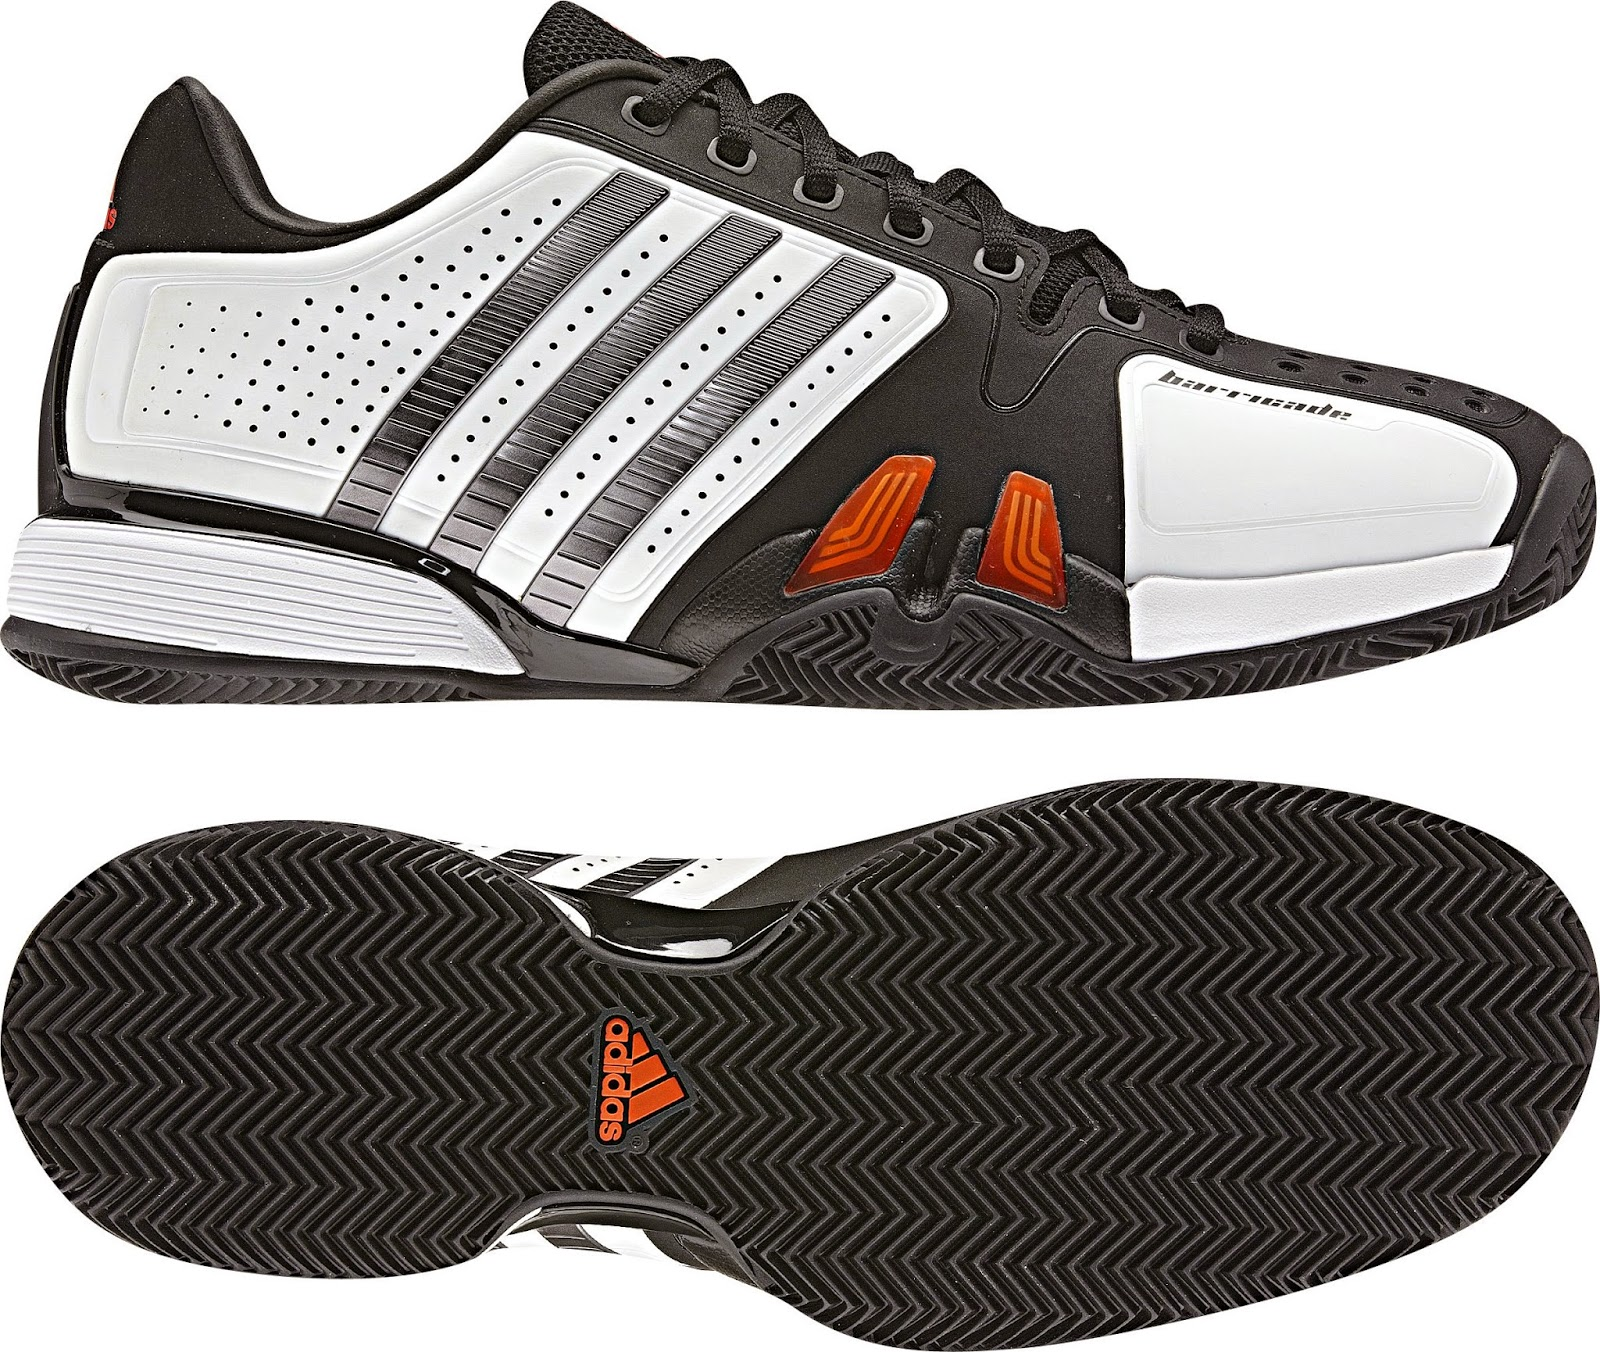 cfa8359044d387 ... canada adidas mens adipower barricade find the best adidas performances  product like adidas mens adipower barricade